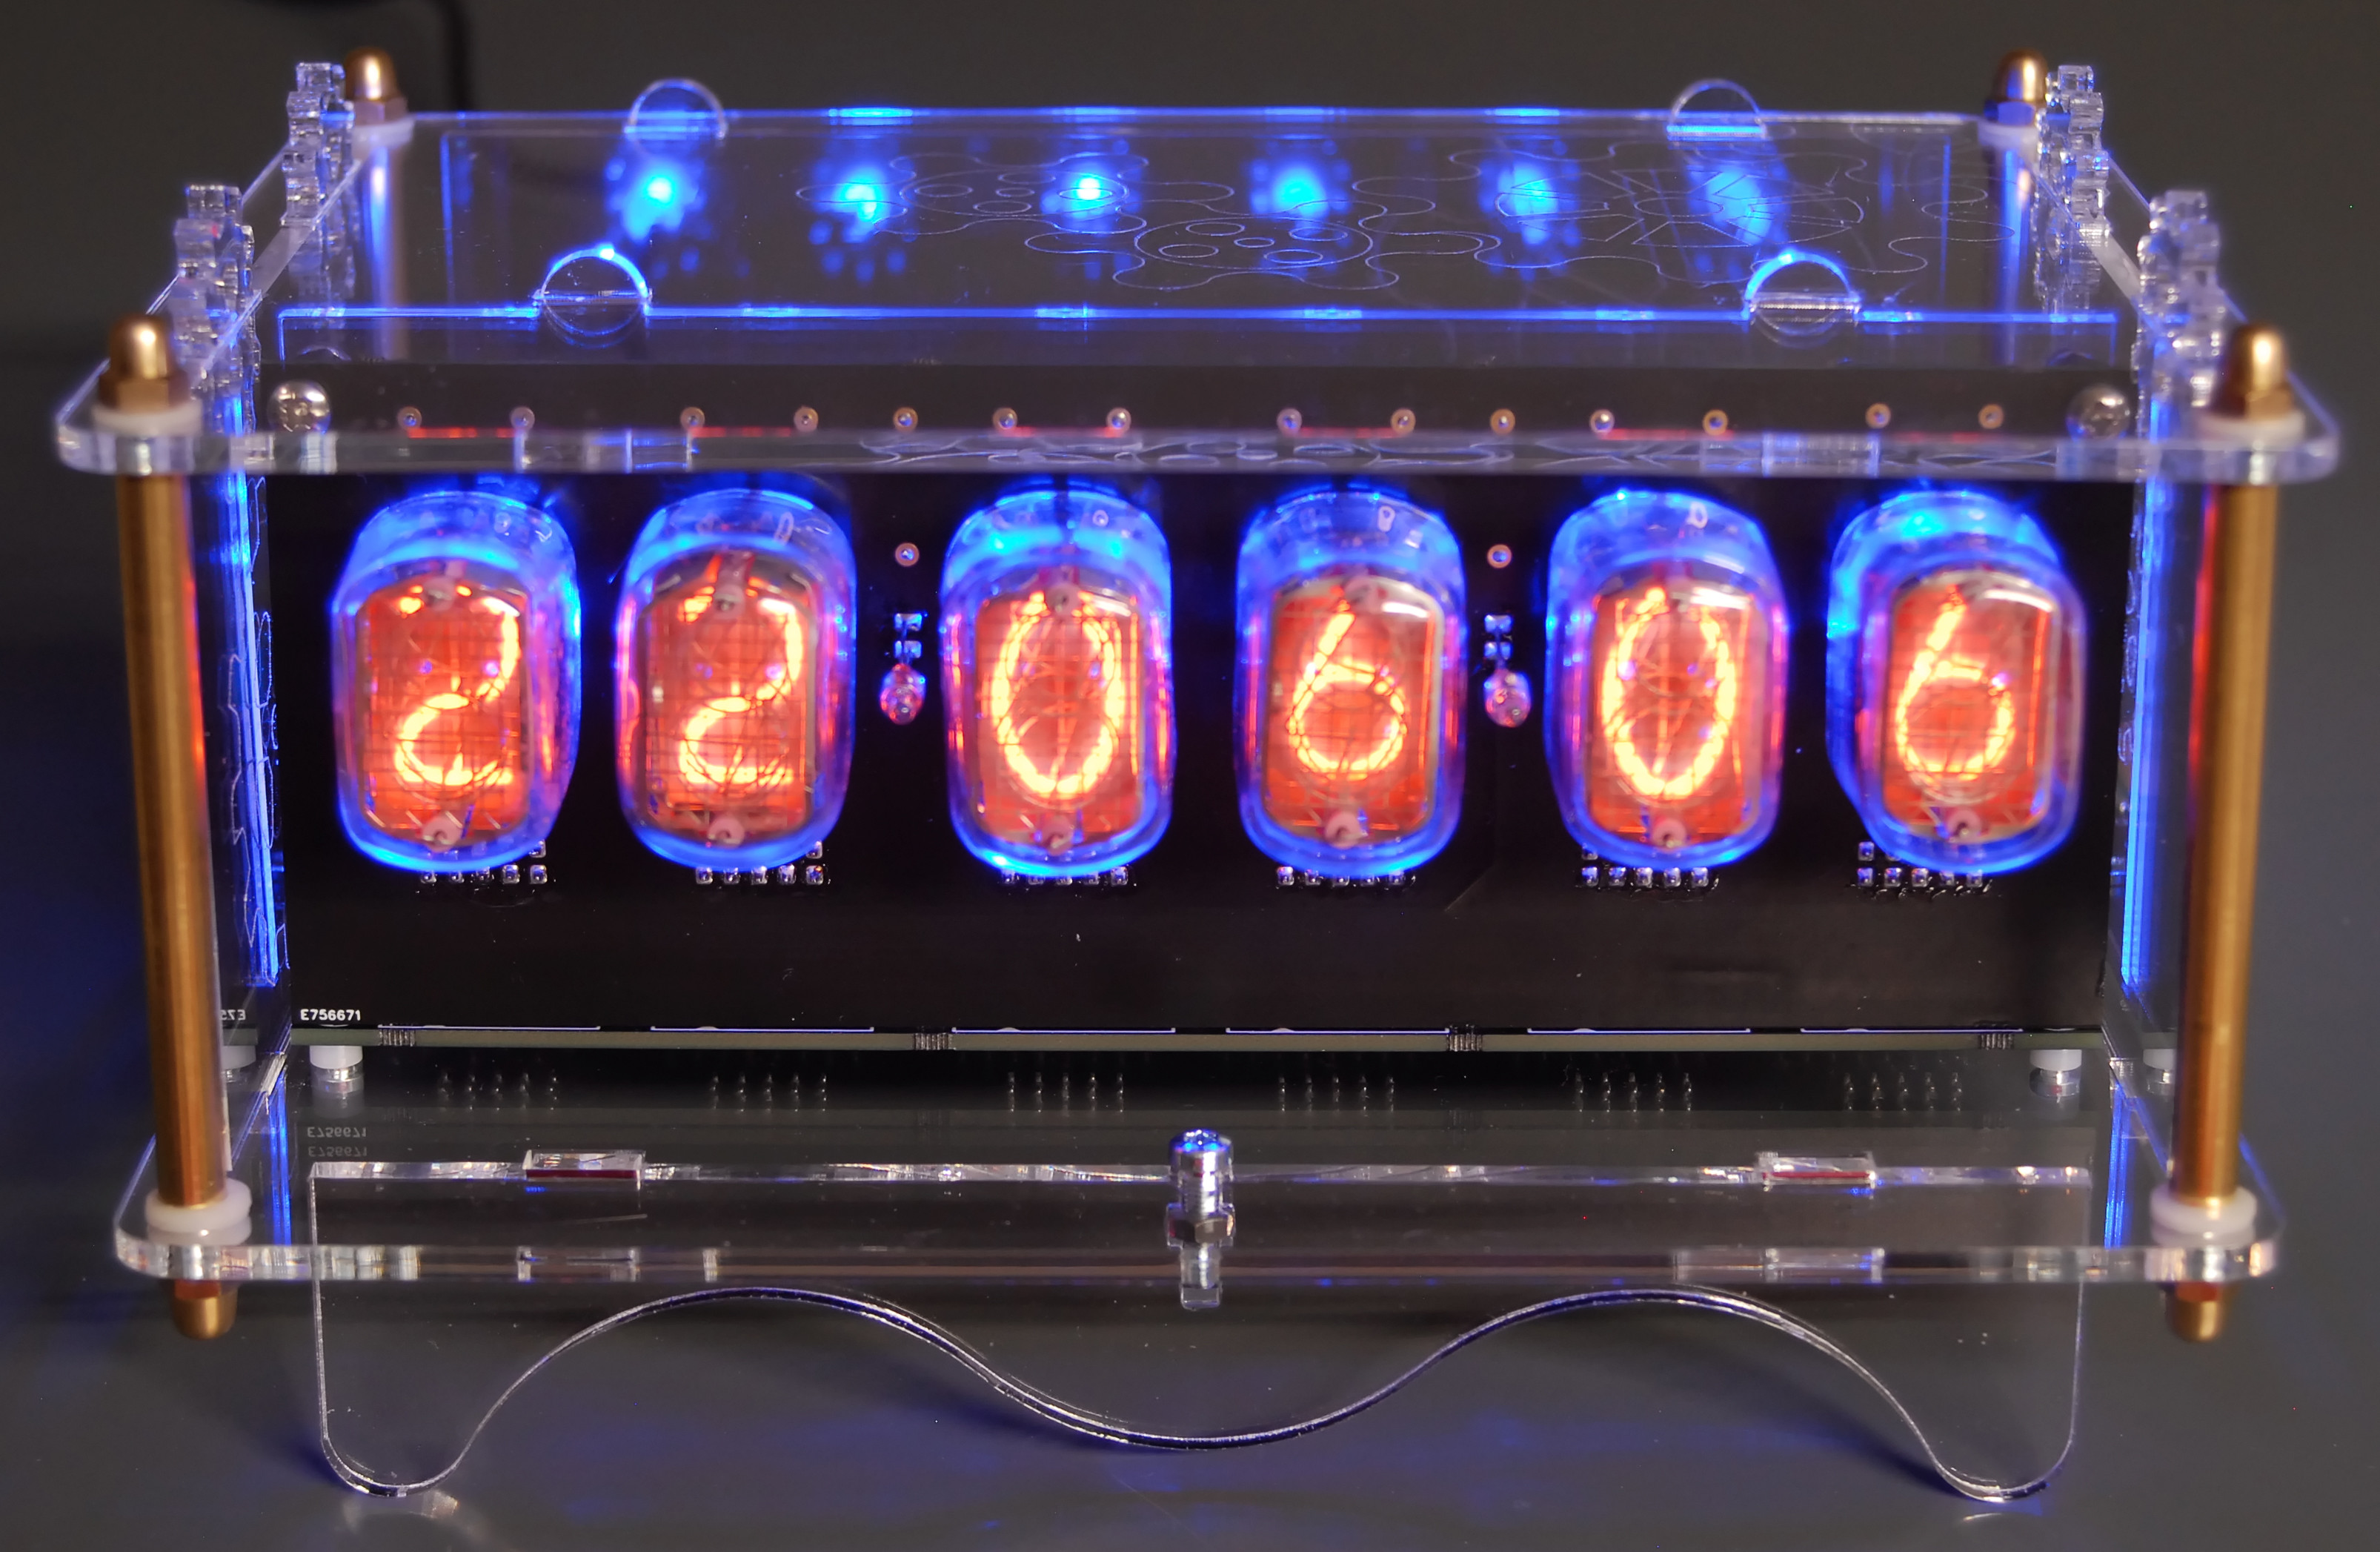 6-digit Nixie clock synchronized by GPS, adjustable to all